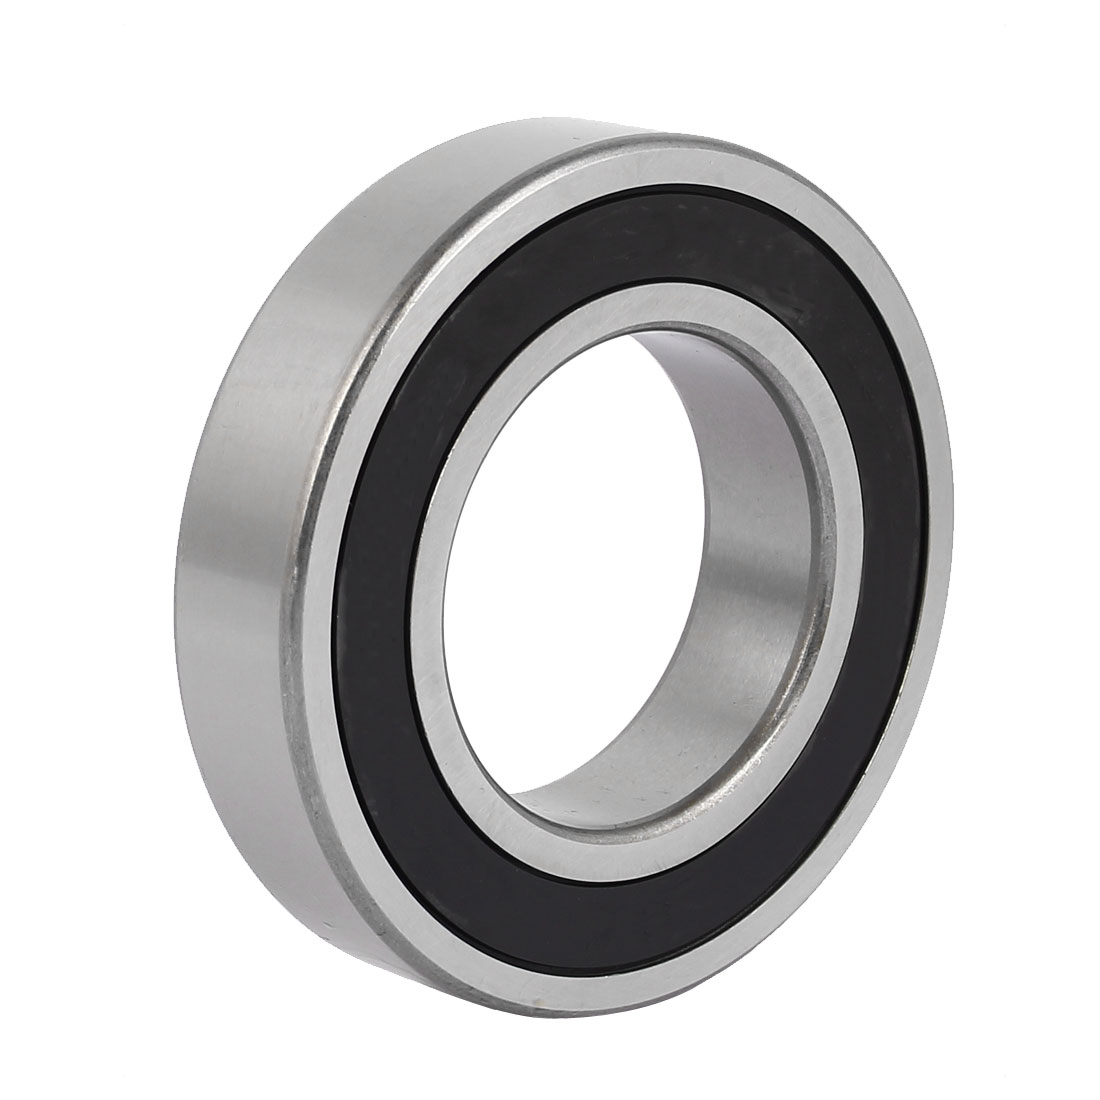 RZ6209 85mm x 45mm x 19mm Dual Side Sealed Deep Groove Ball Bearing